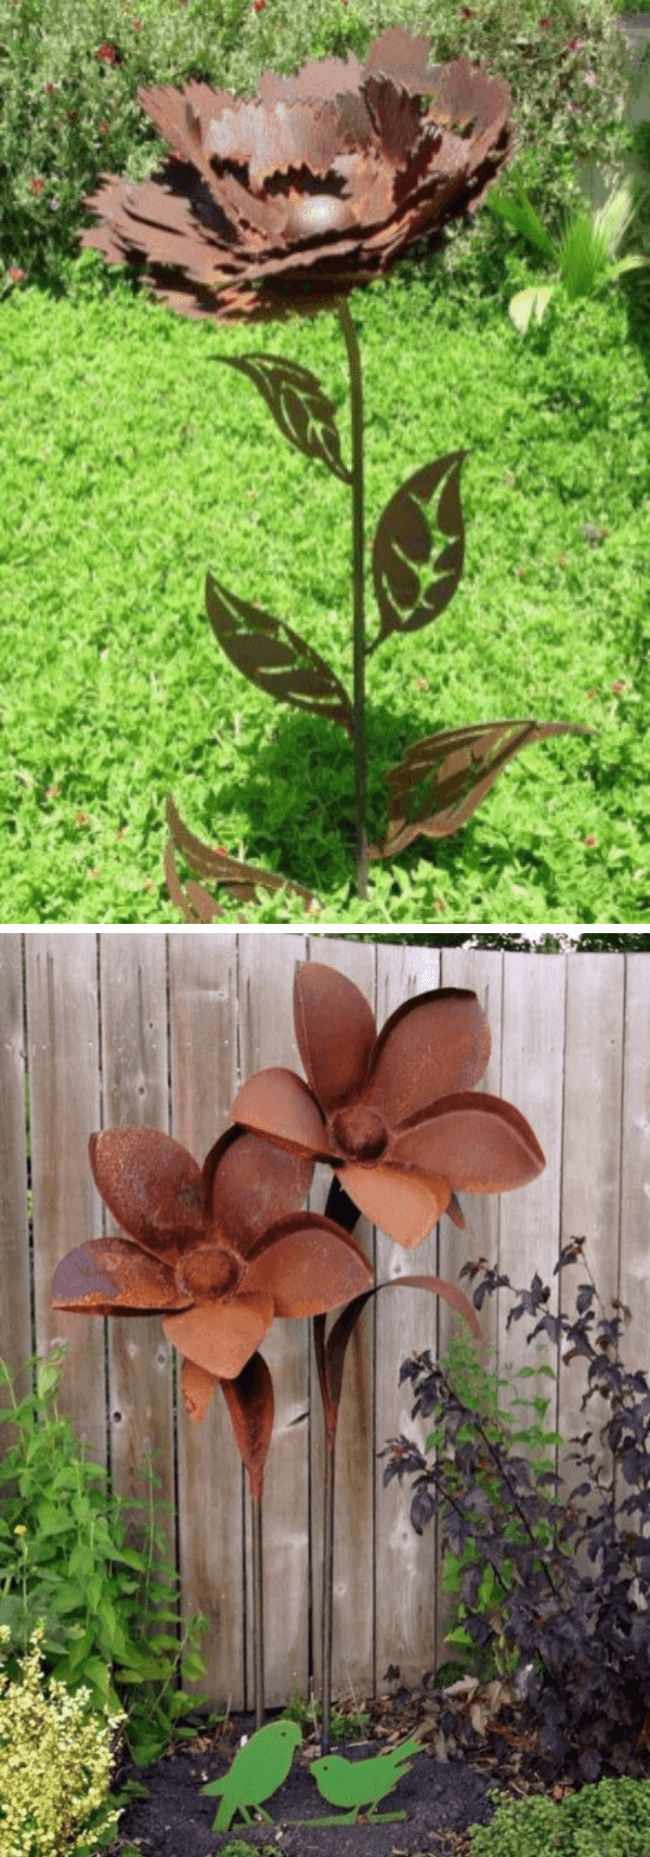 12+ Creative Rusty Metal Garden Decor Ideas & Projects For ...